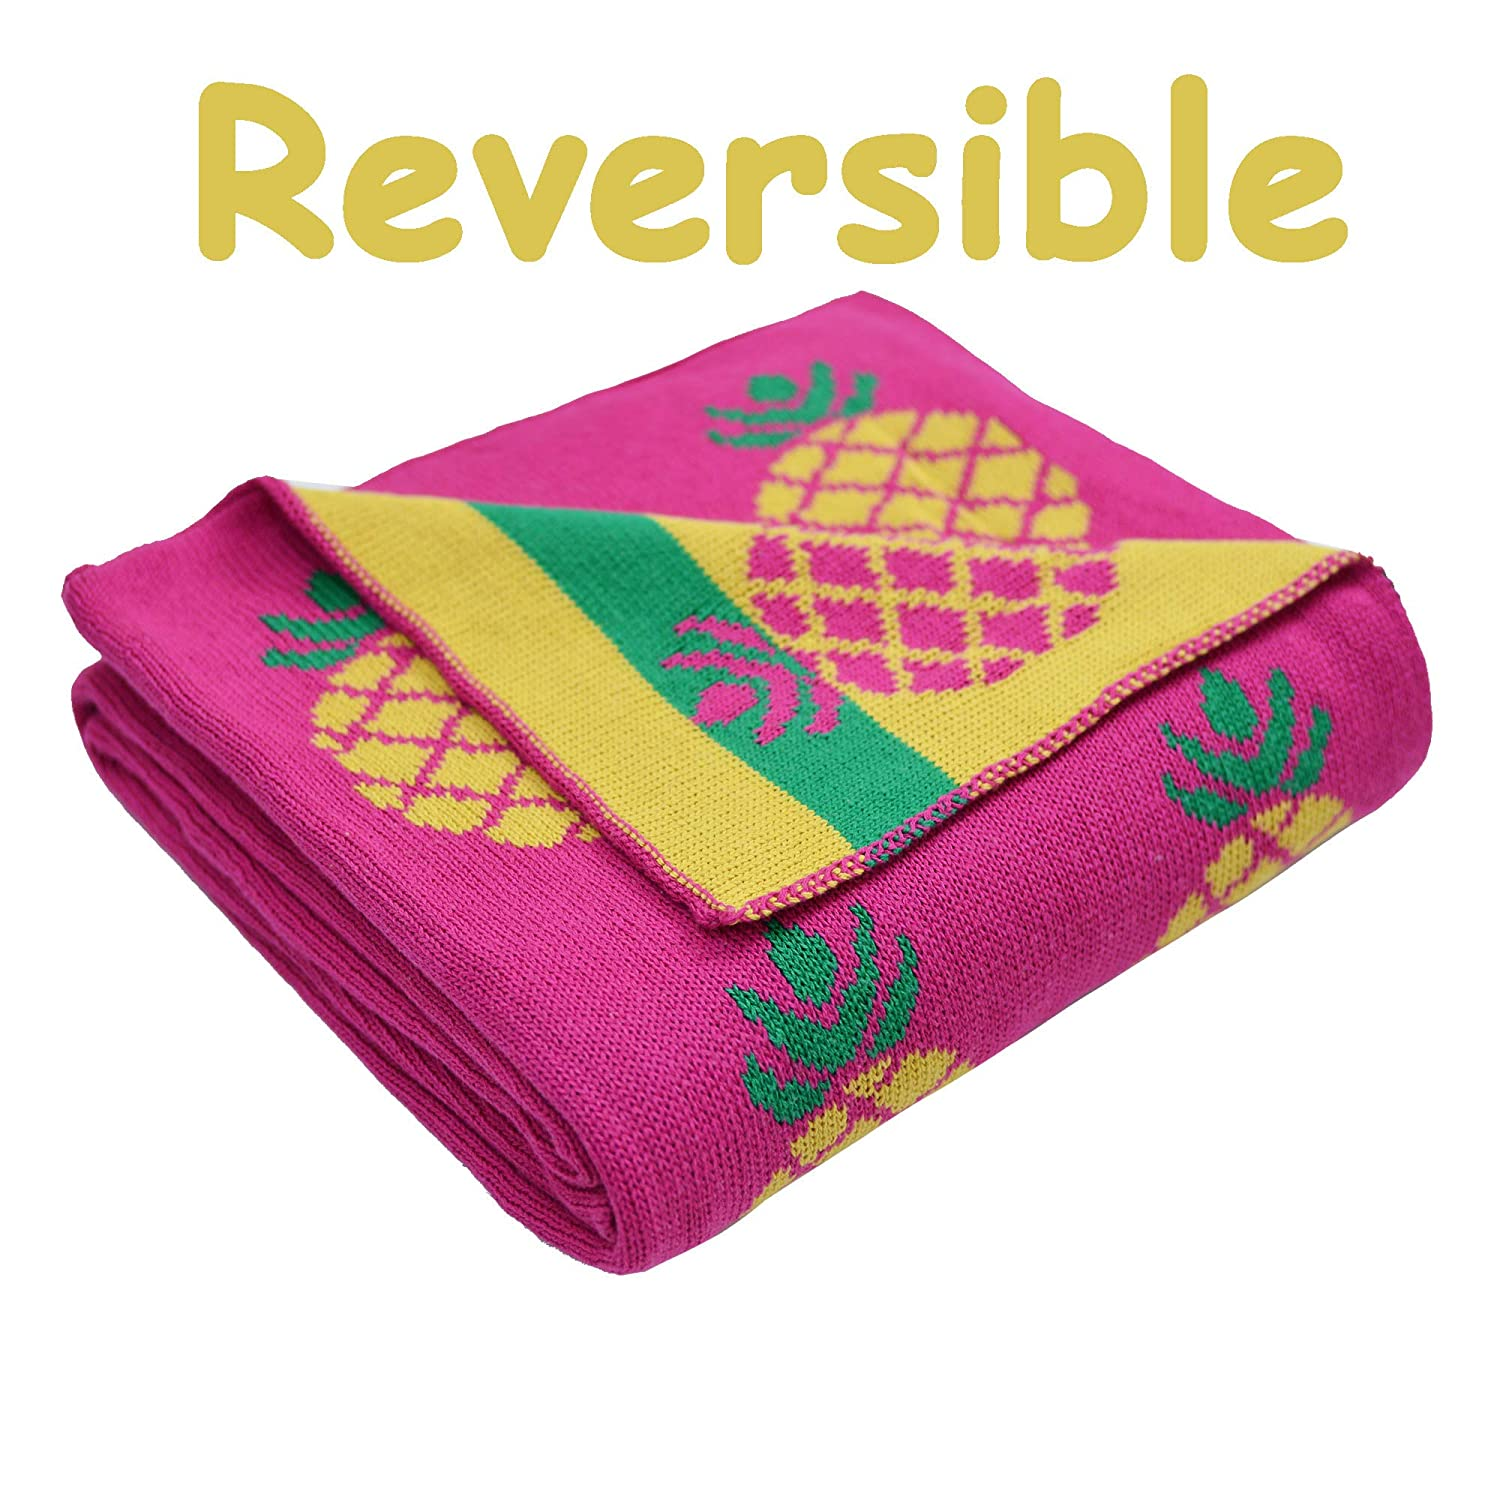 Brandream Yellow Pineapple Knit Throw Blanket Kids Decorative Throw Blanket for Couch Bed Pineapple Decor Gifts 43 X 51 Snuggling Travel Picnic Everyday Use